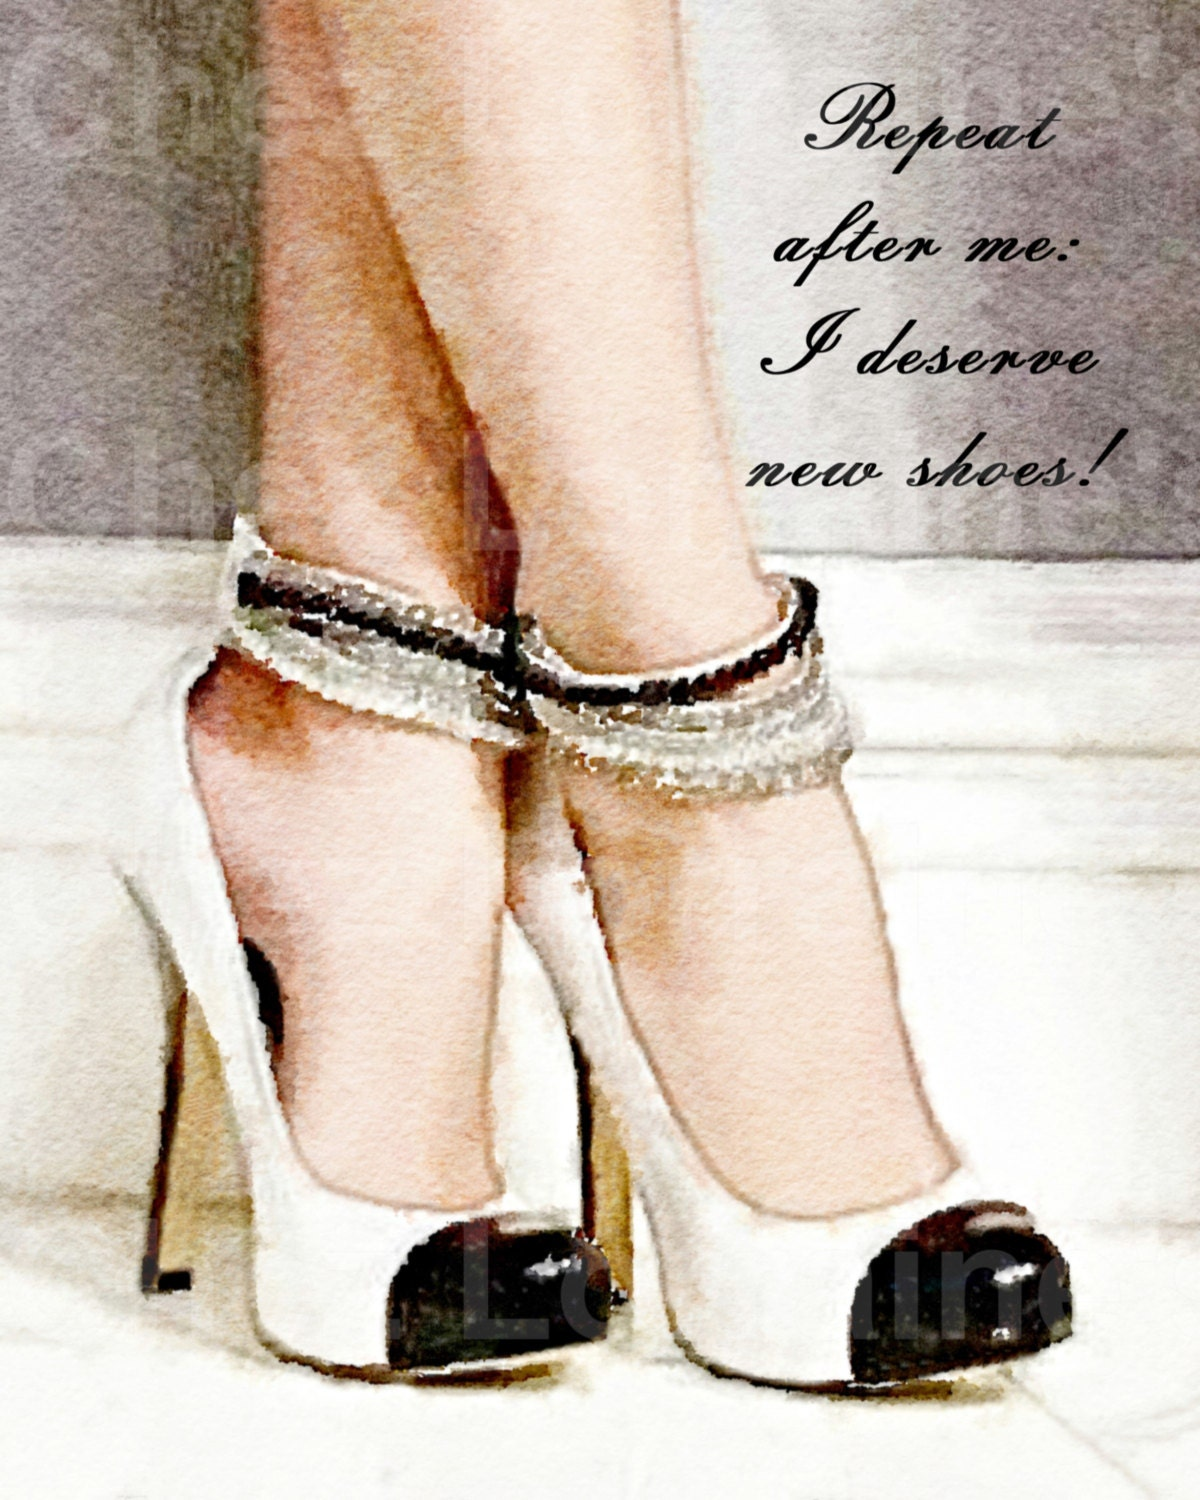 I Deserve New Shoes: A Watercolor Fashion Fine Art Print With Shoe Quote  For The Fashion Or Chanel Shoe Lover